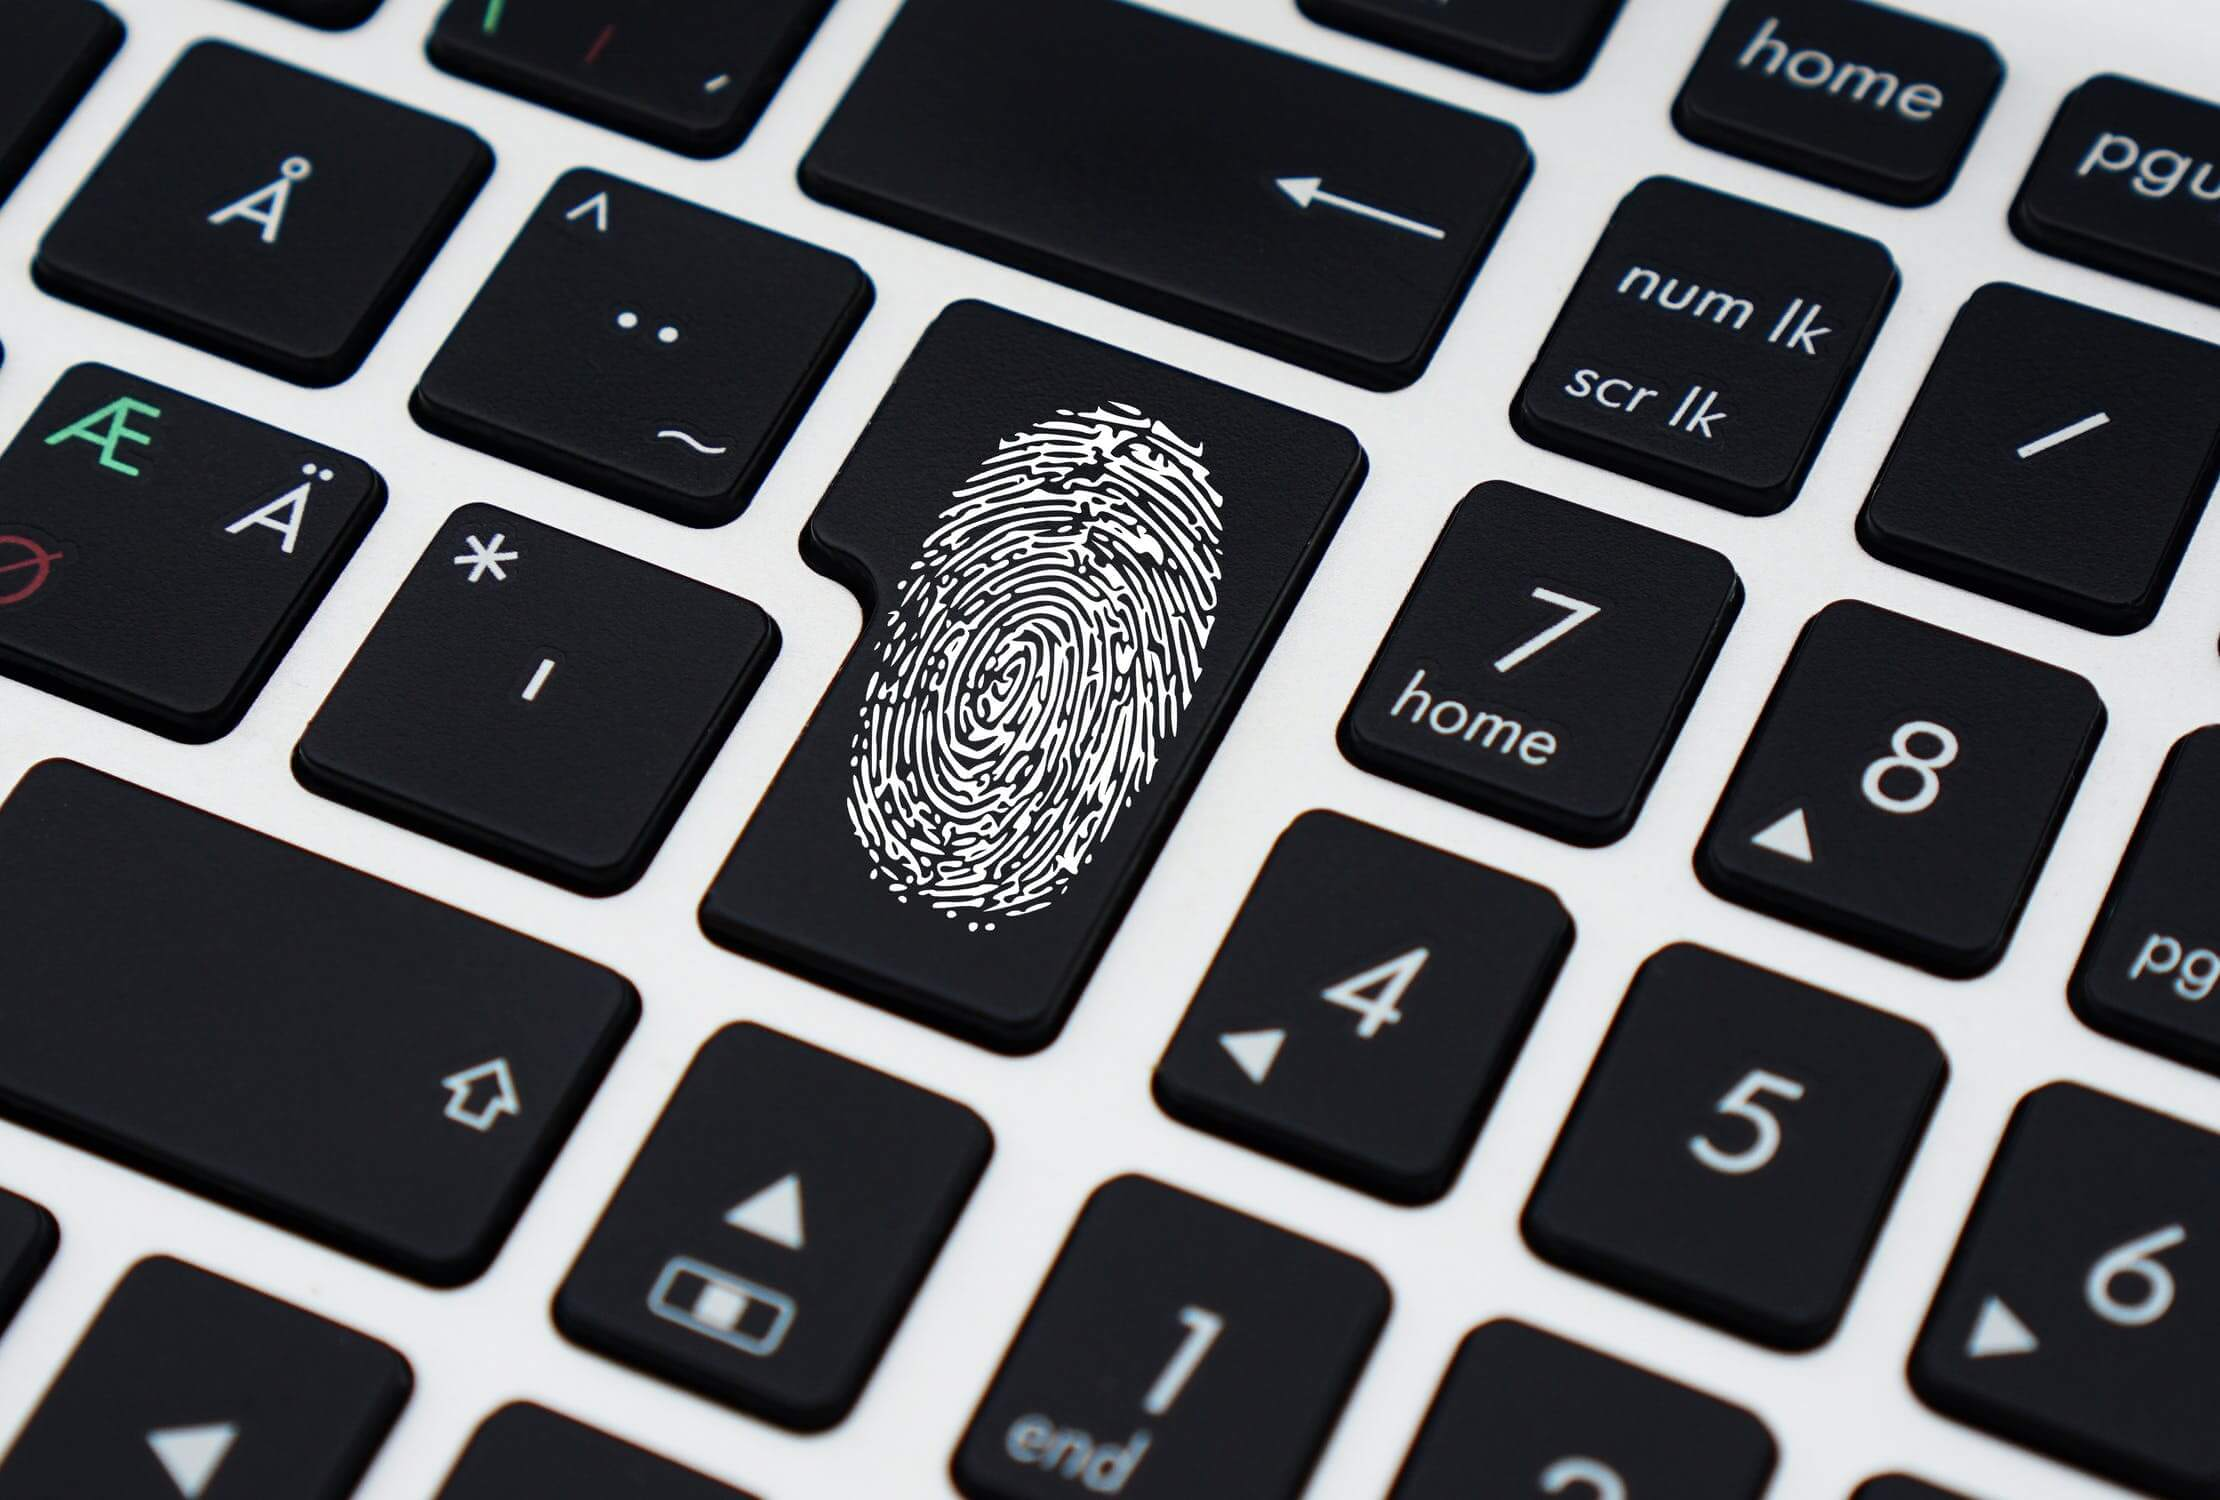 Digital fingerprinting identifies the profile of any person via user interface imprints, making hackers more vulnerable to capture.